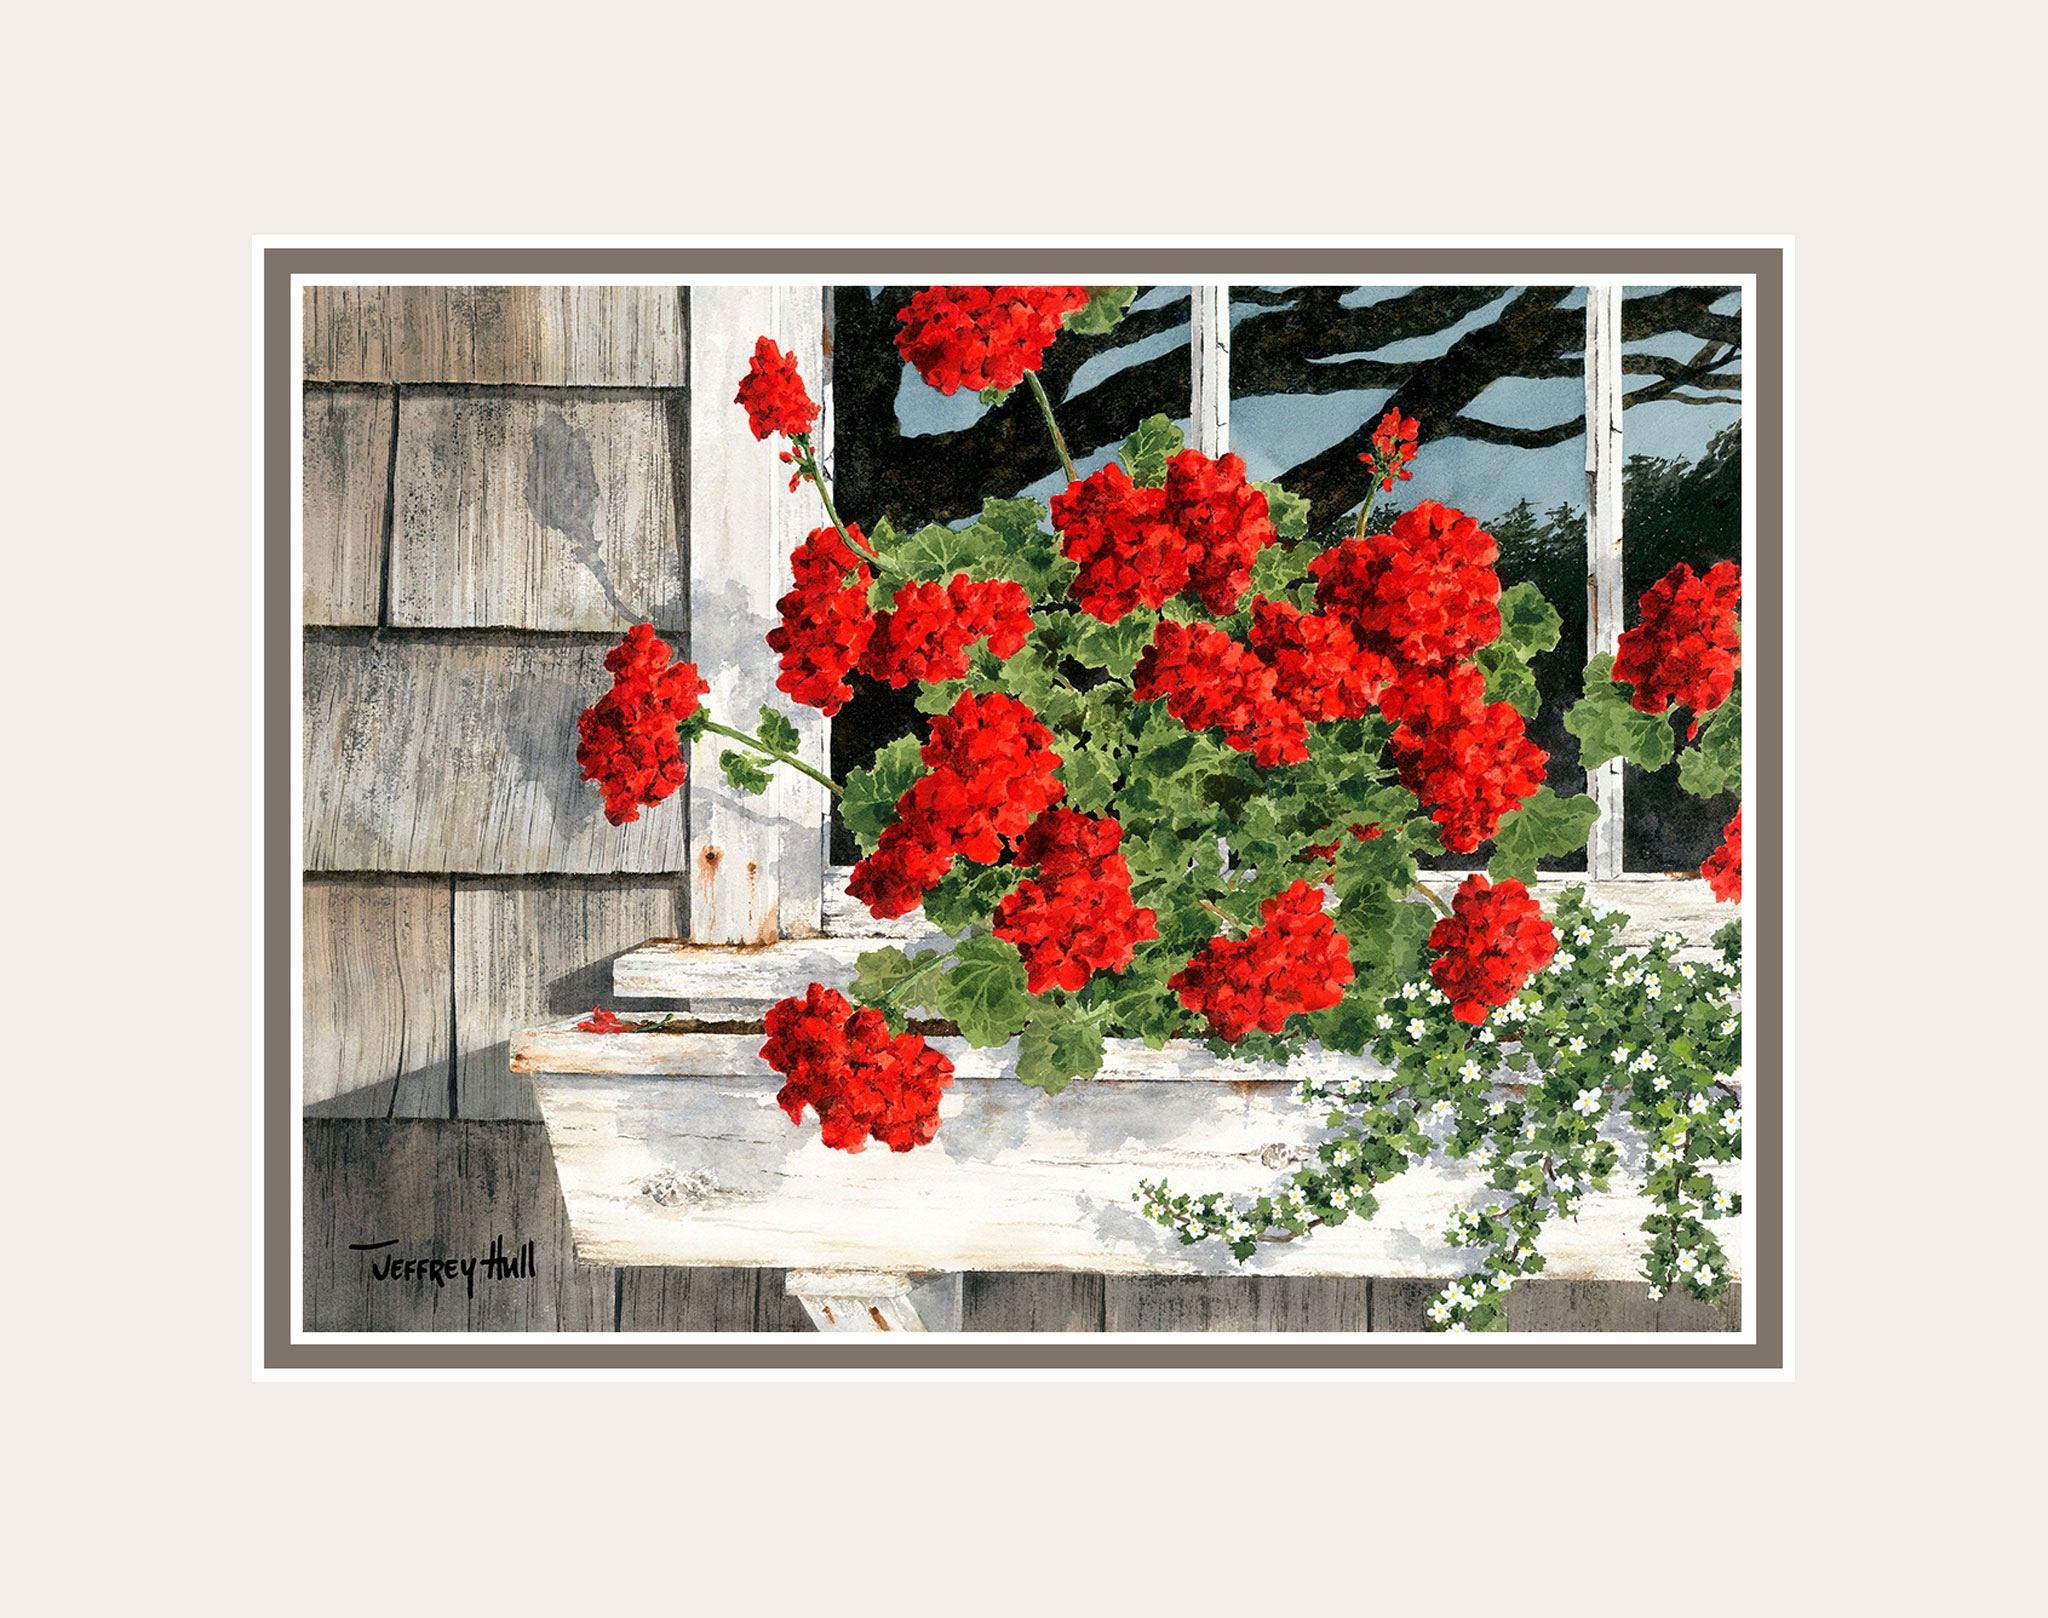 Carol_s-Geraniums-Mini-Unframed-Talc-Balmoral-4-Website-2021